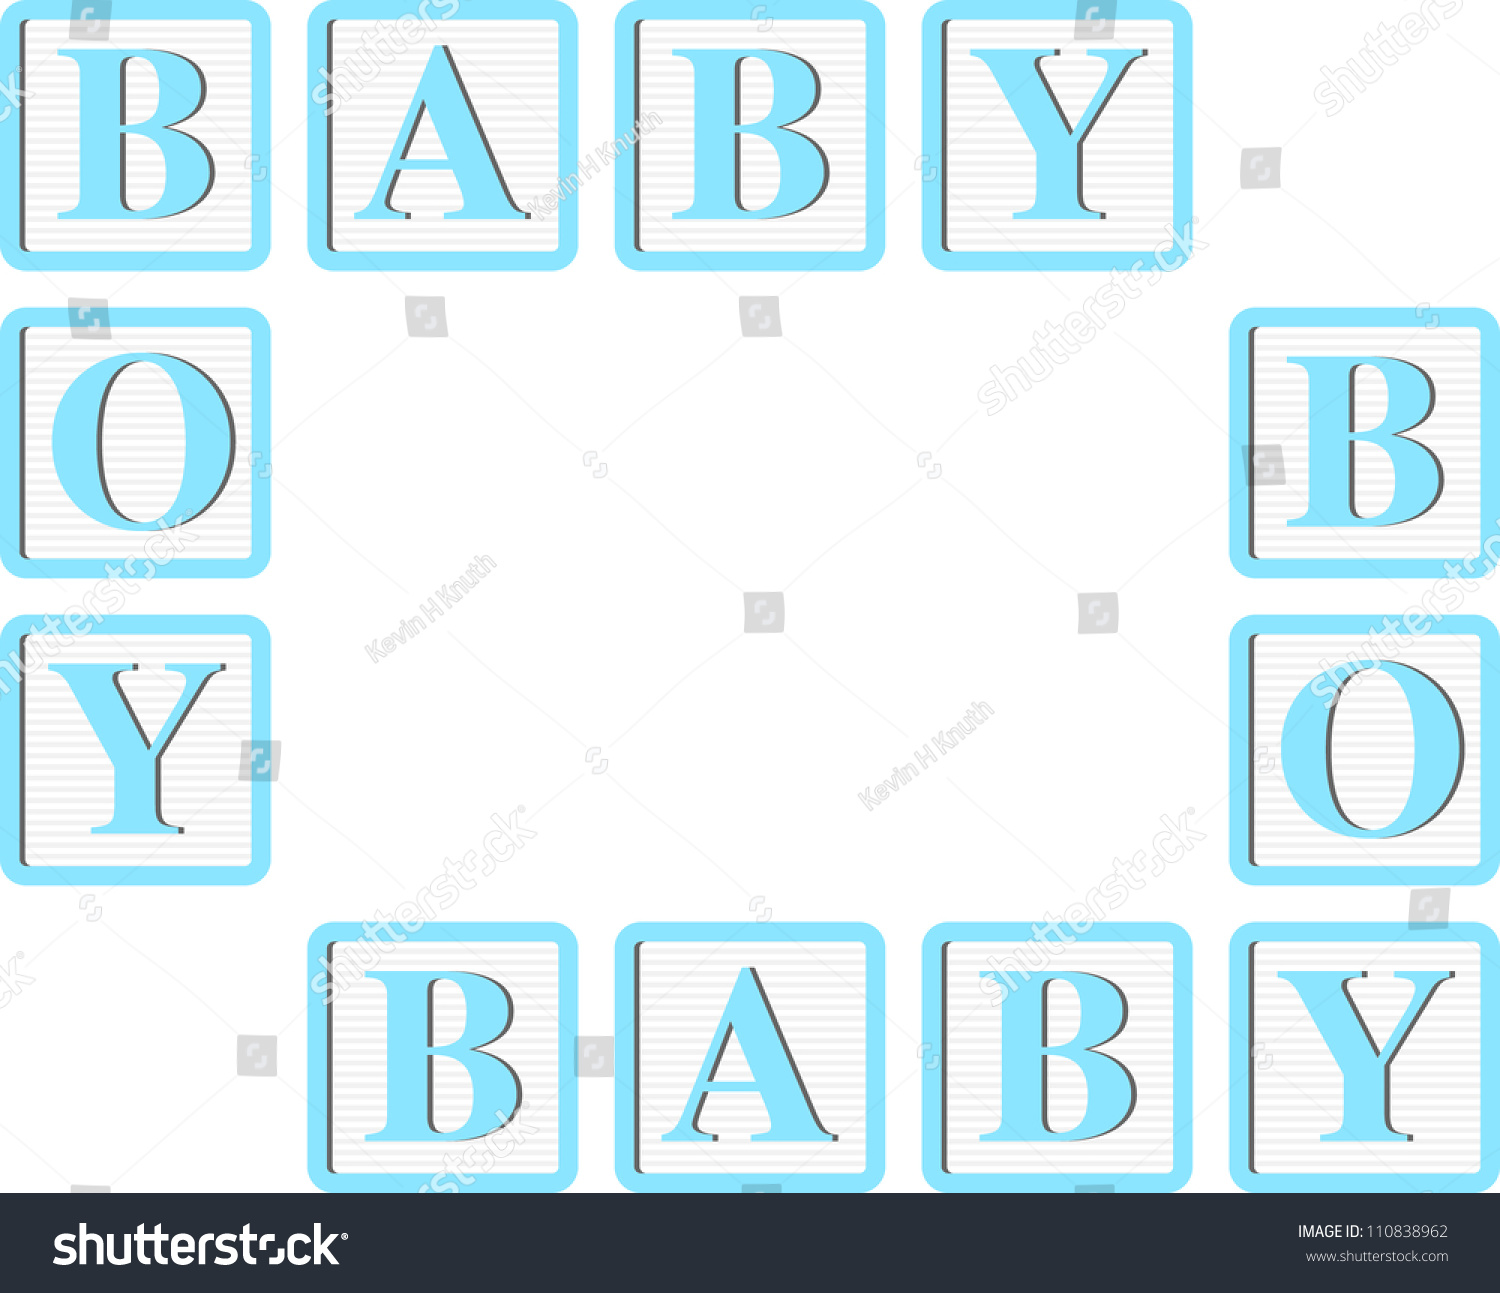 baby boy blue block letters for invitations cards or announcements